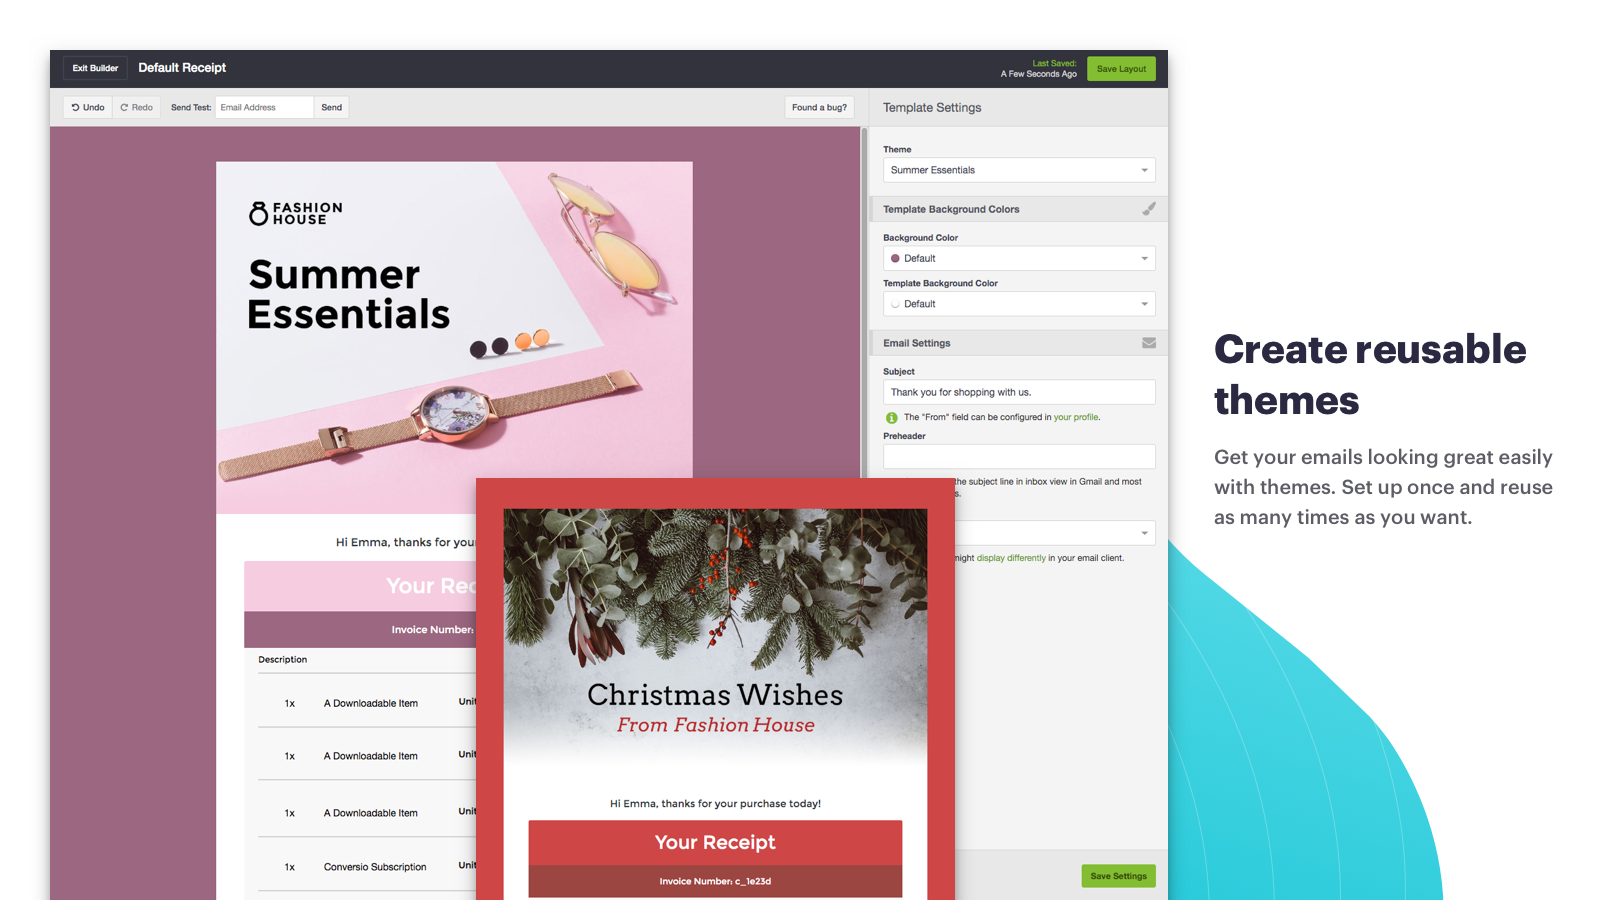 Get your marketing emails looking great with themes.